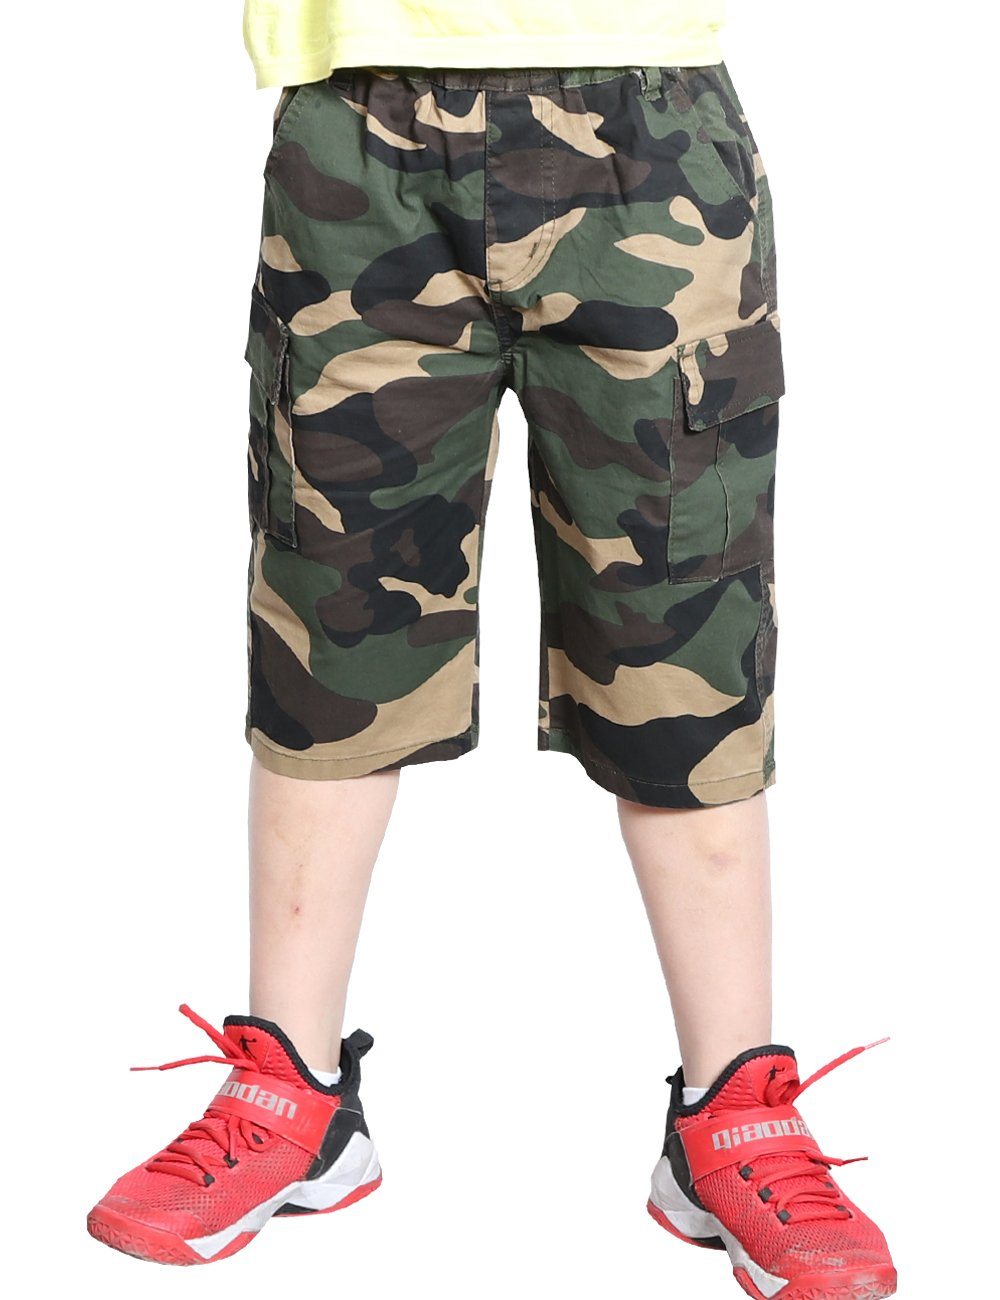 WIYOSHY Boys Camo Elastic Waist Pull On Jogger Chino Shorts for Kids 5-16 Years (Green, 160 (Size 14))